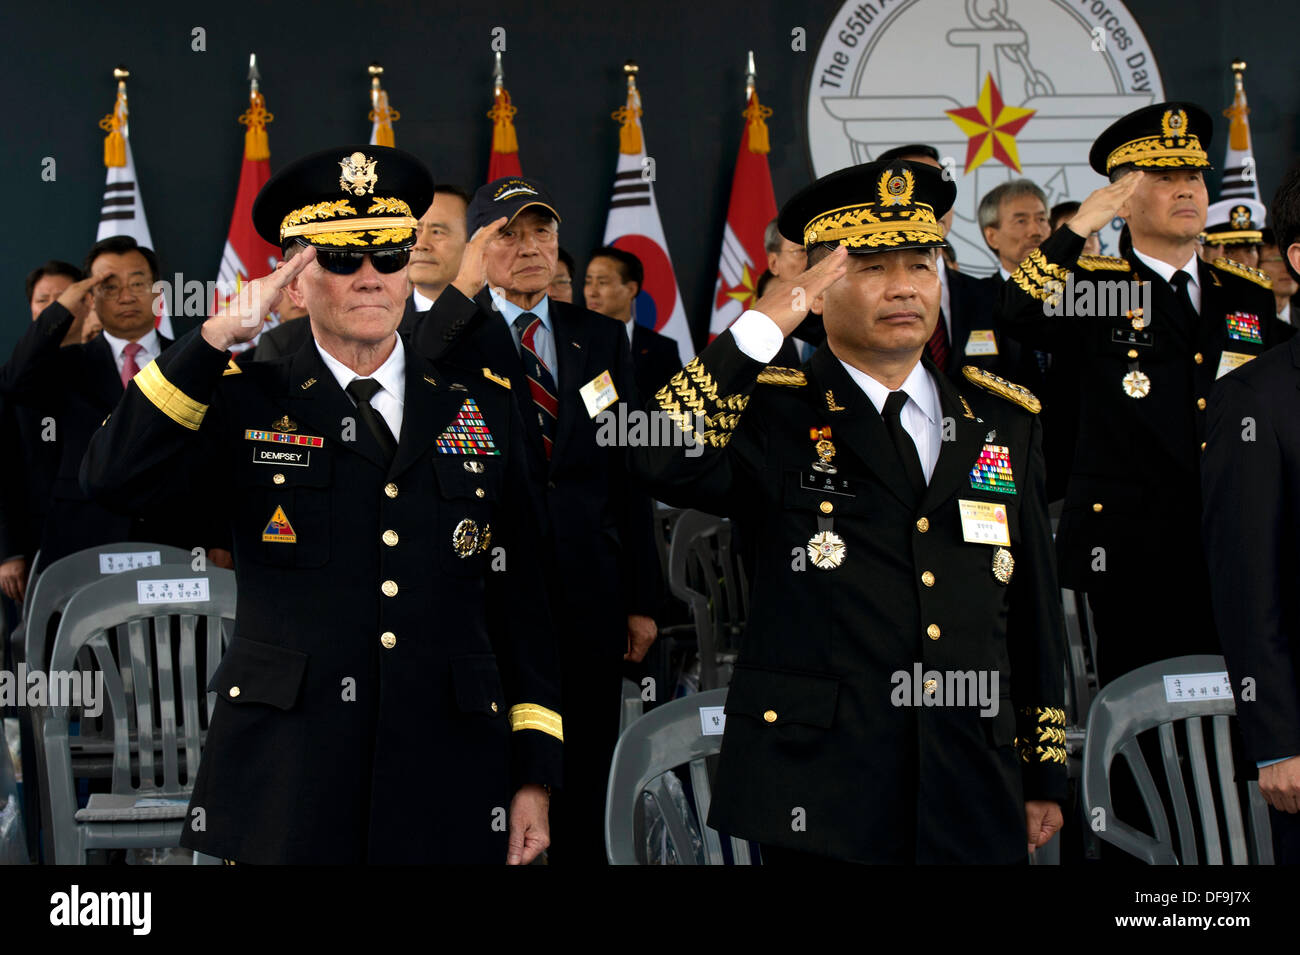 US Chairman of the Joint Chiefs General Martin Dempsey and South Korea General Jung Seung-jo salute during the ROK Armed Forces Parade October 1, 2013 in Seoul, Republic of Korea. The military parade commemorates the anniversary of the ROK-U.S. Alliance. - Stock Image